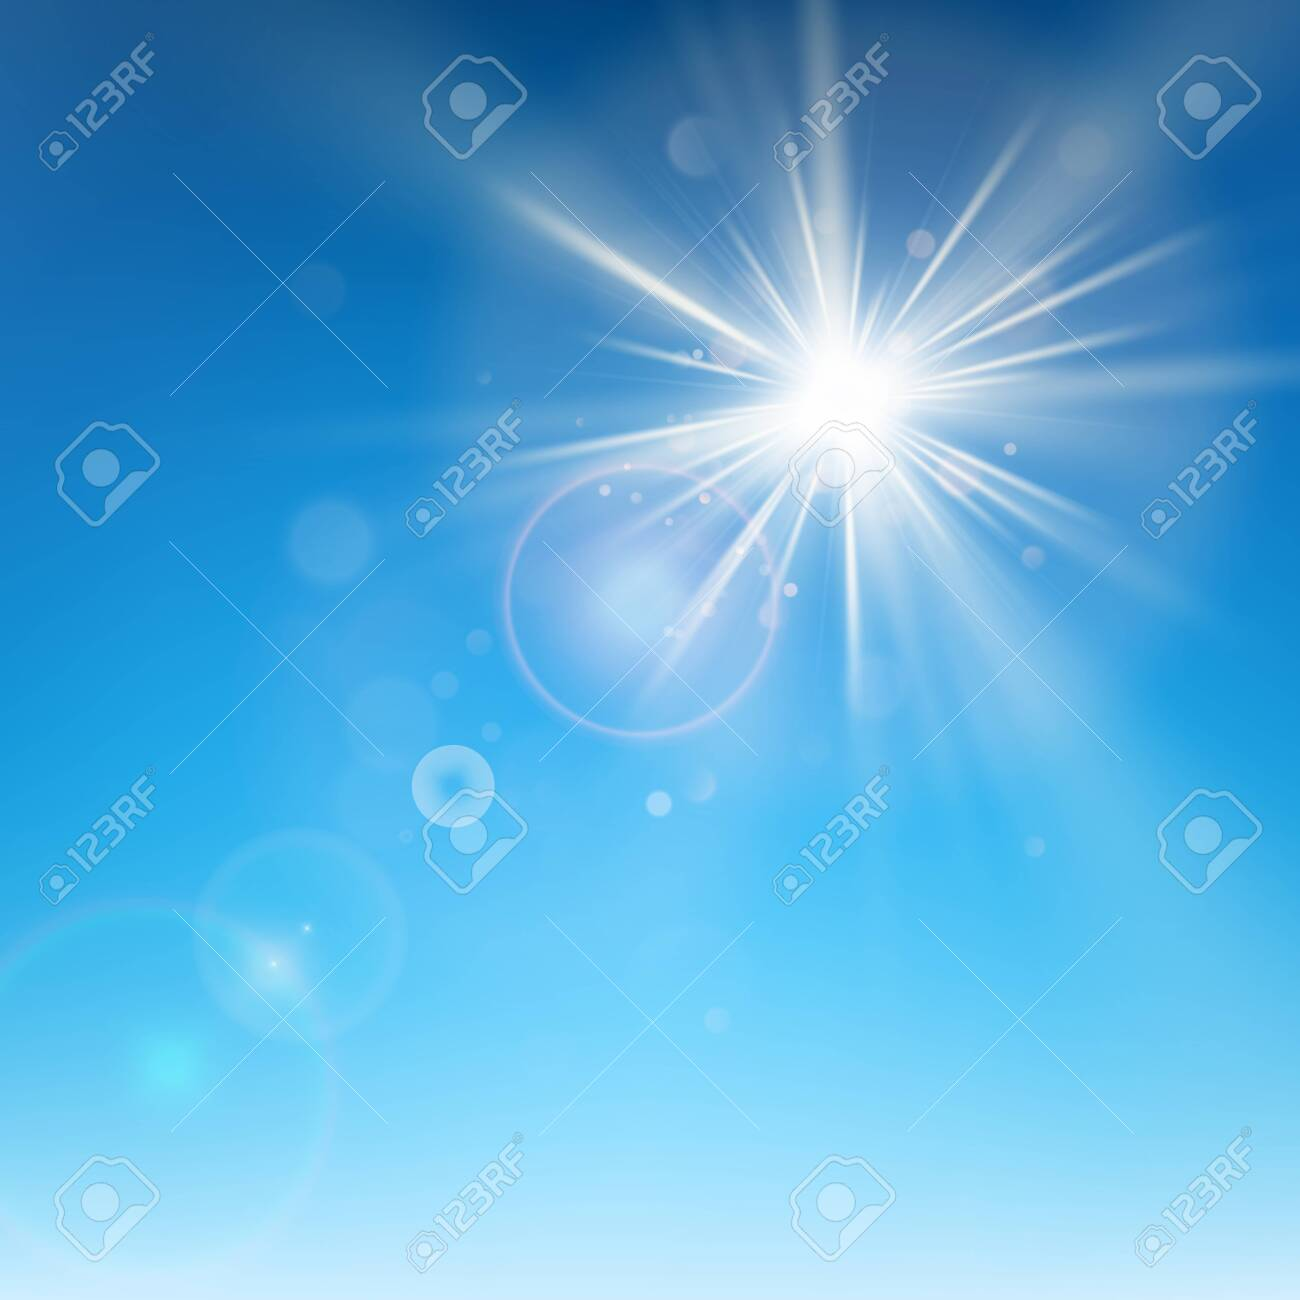 Clear blue sky with sun shine. Lens flare effect. EPS 10 vector file - 143687622